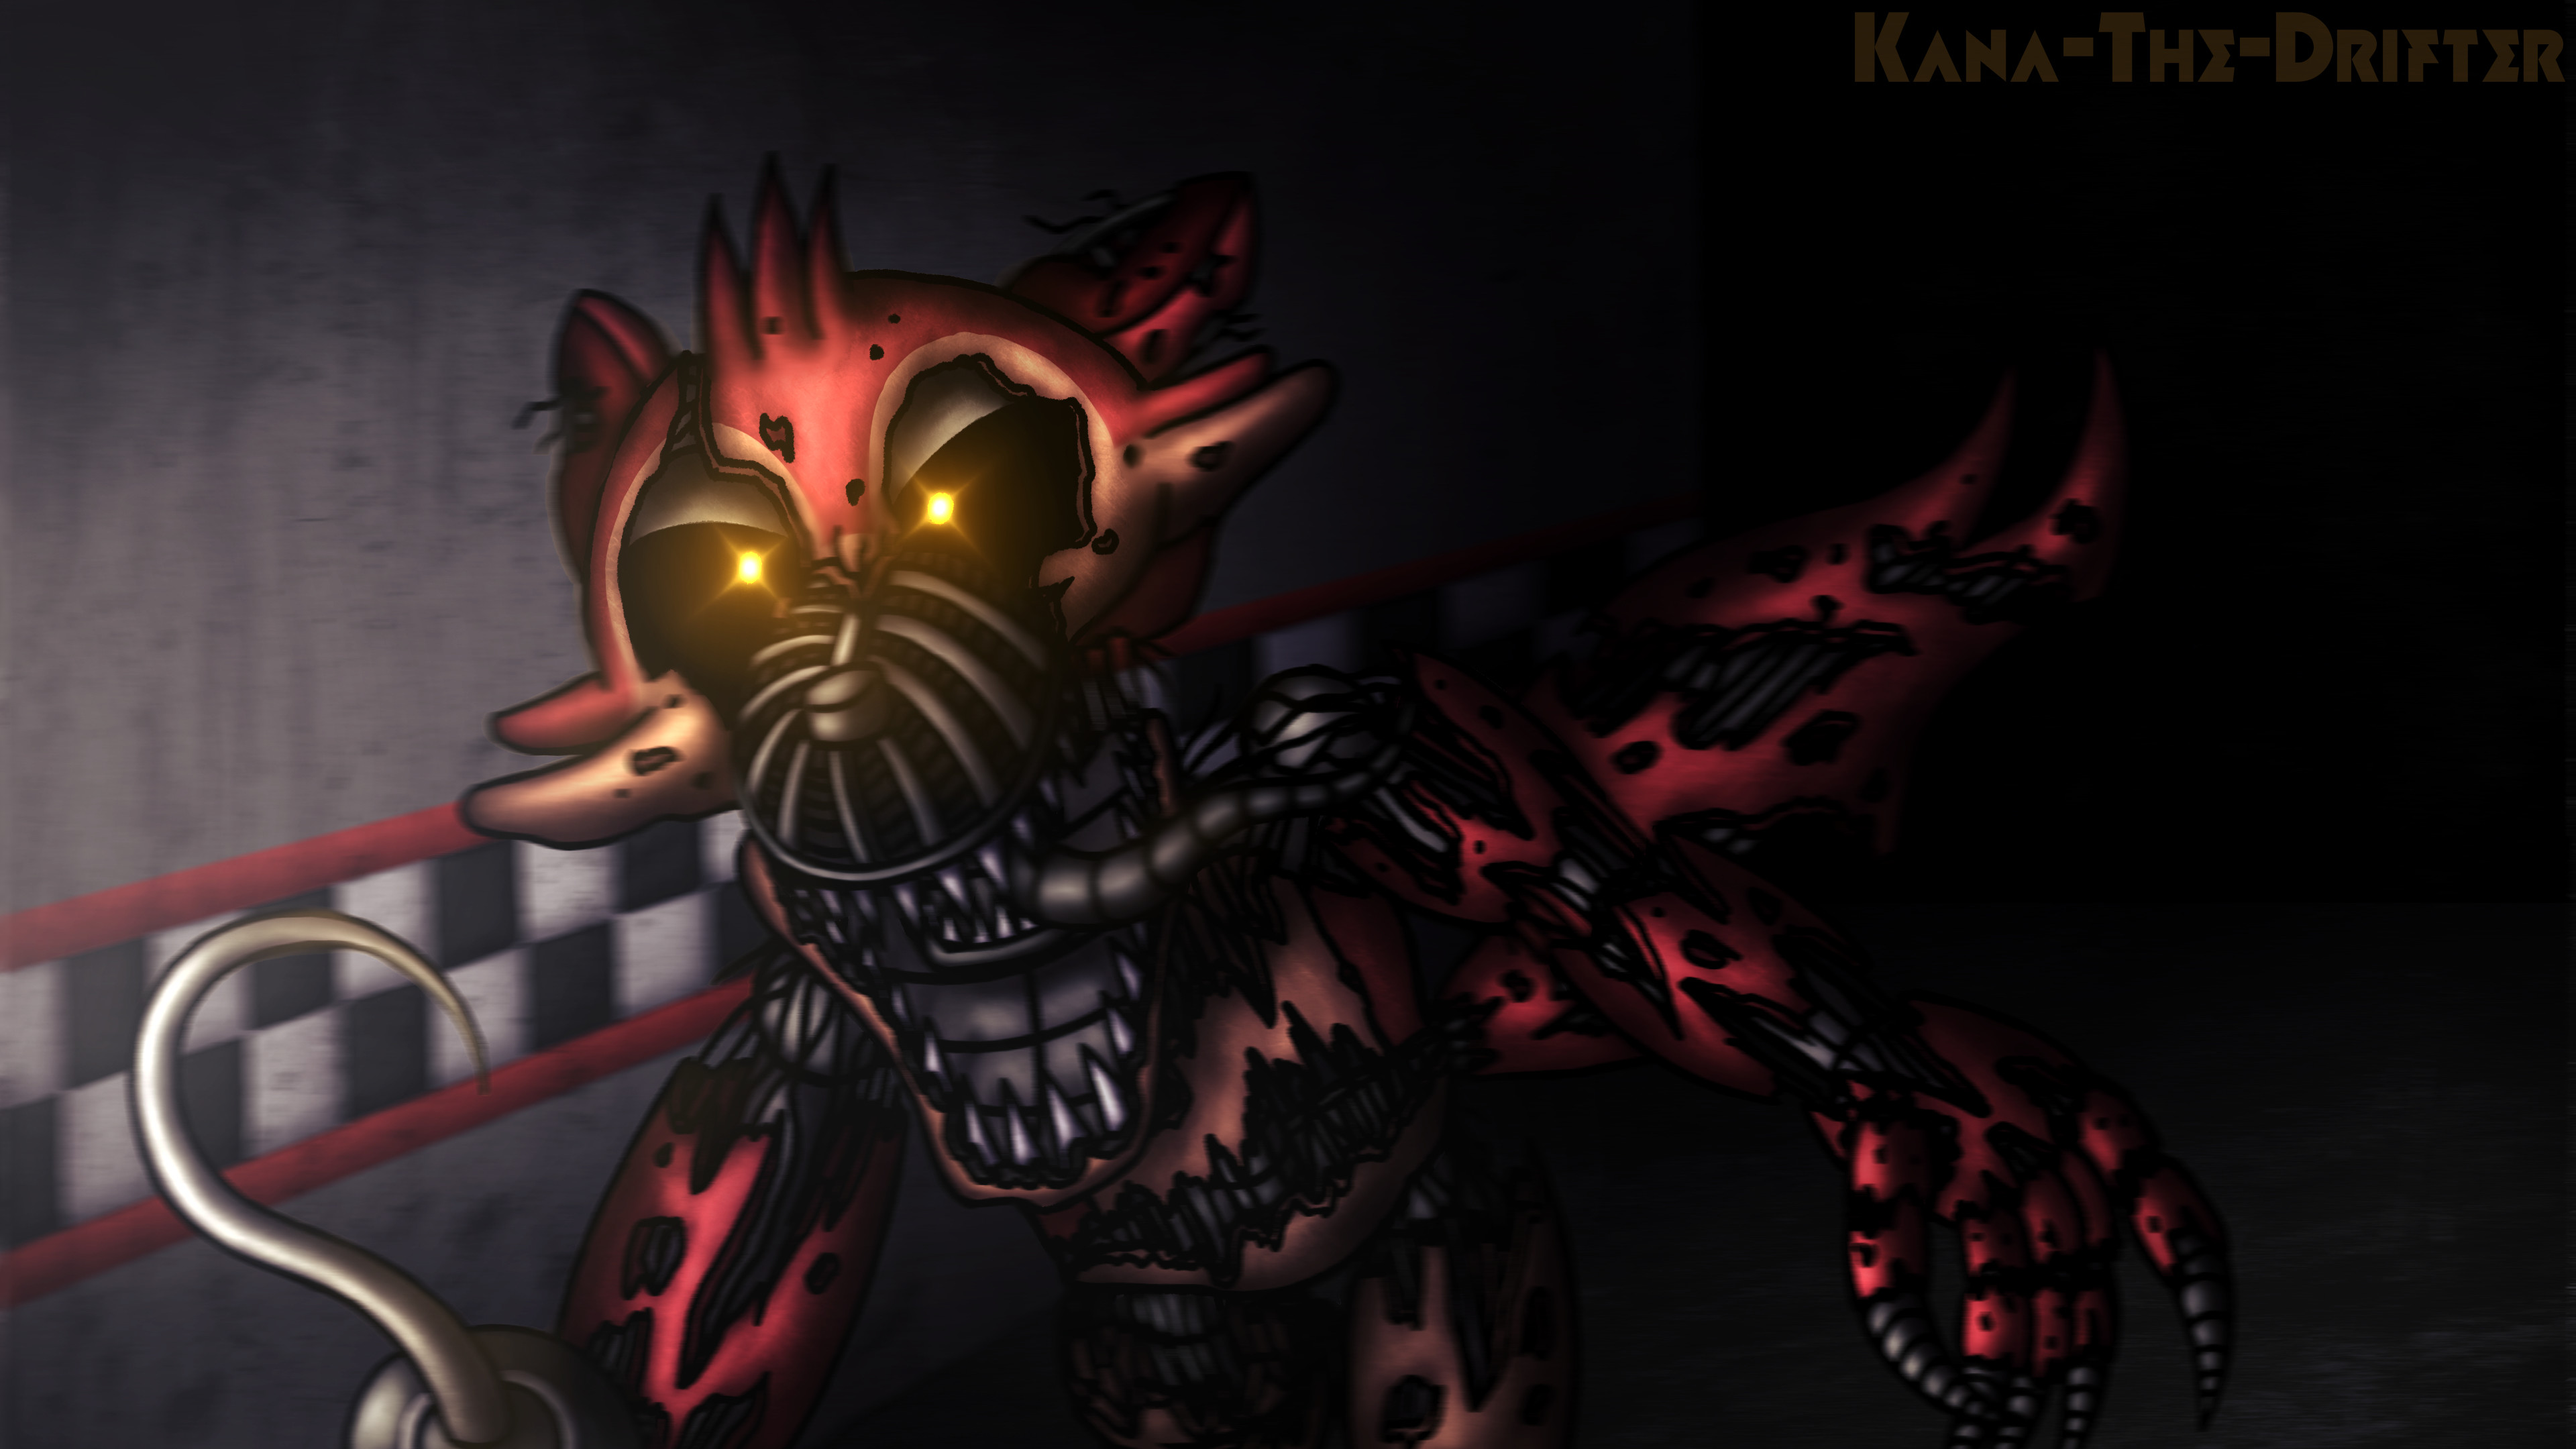 … Don't Even Try To Escape (4K FnaF Wallpaper) by Kana-The